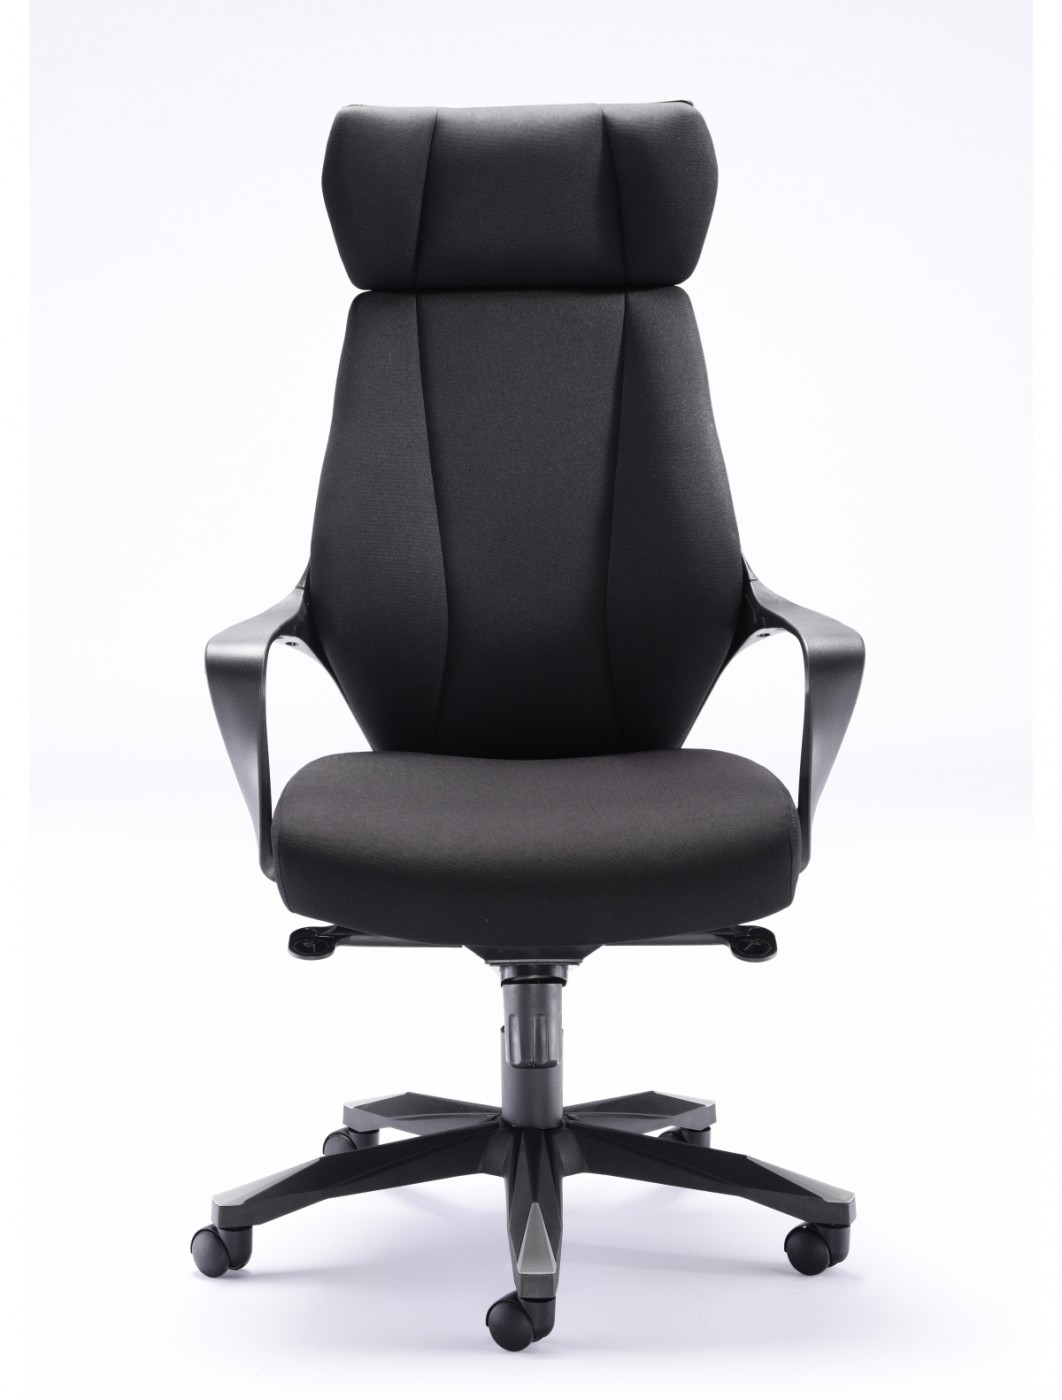 fabric office chairs uk fishing chair accessories rocky ch1783bk 121